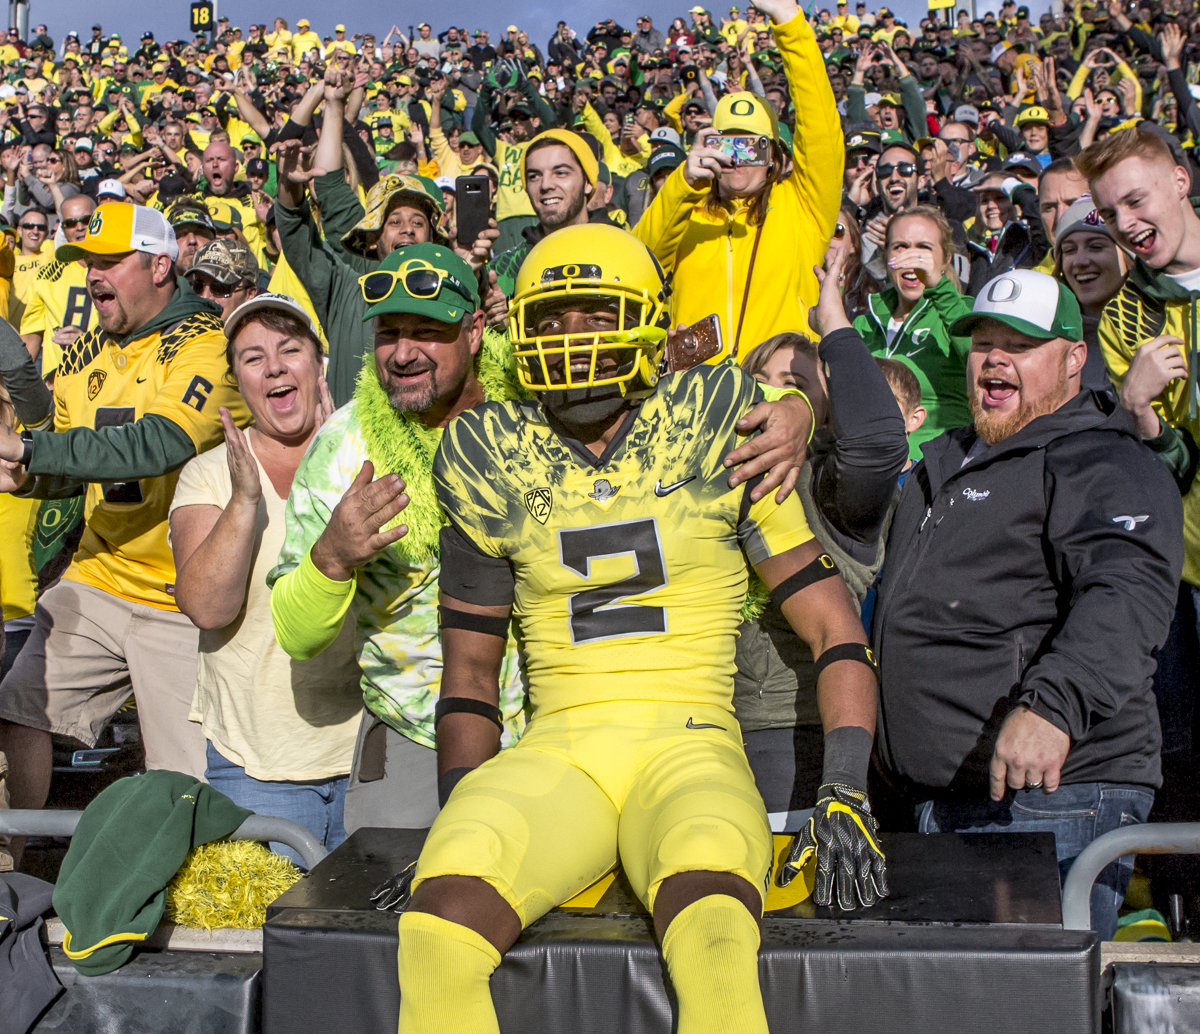 Oregon safety Tyree Robinson (#2) leaps into the crowd before kickoff. The Oregon Ducks trail the Washington State Cougars 10 to 13 at the end of the first half. Photo by Ben Lonergan, Oregon News Lab